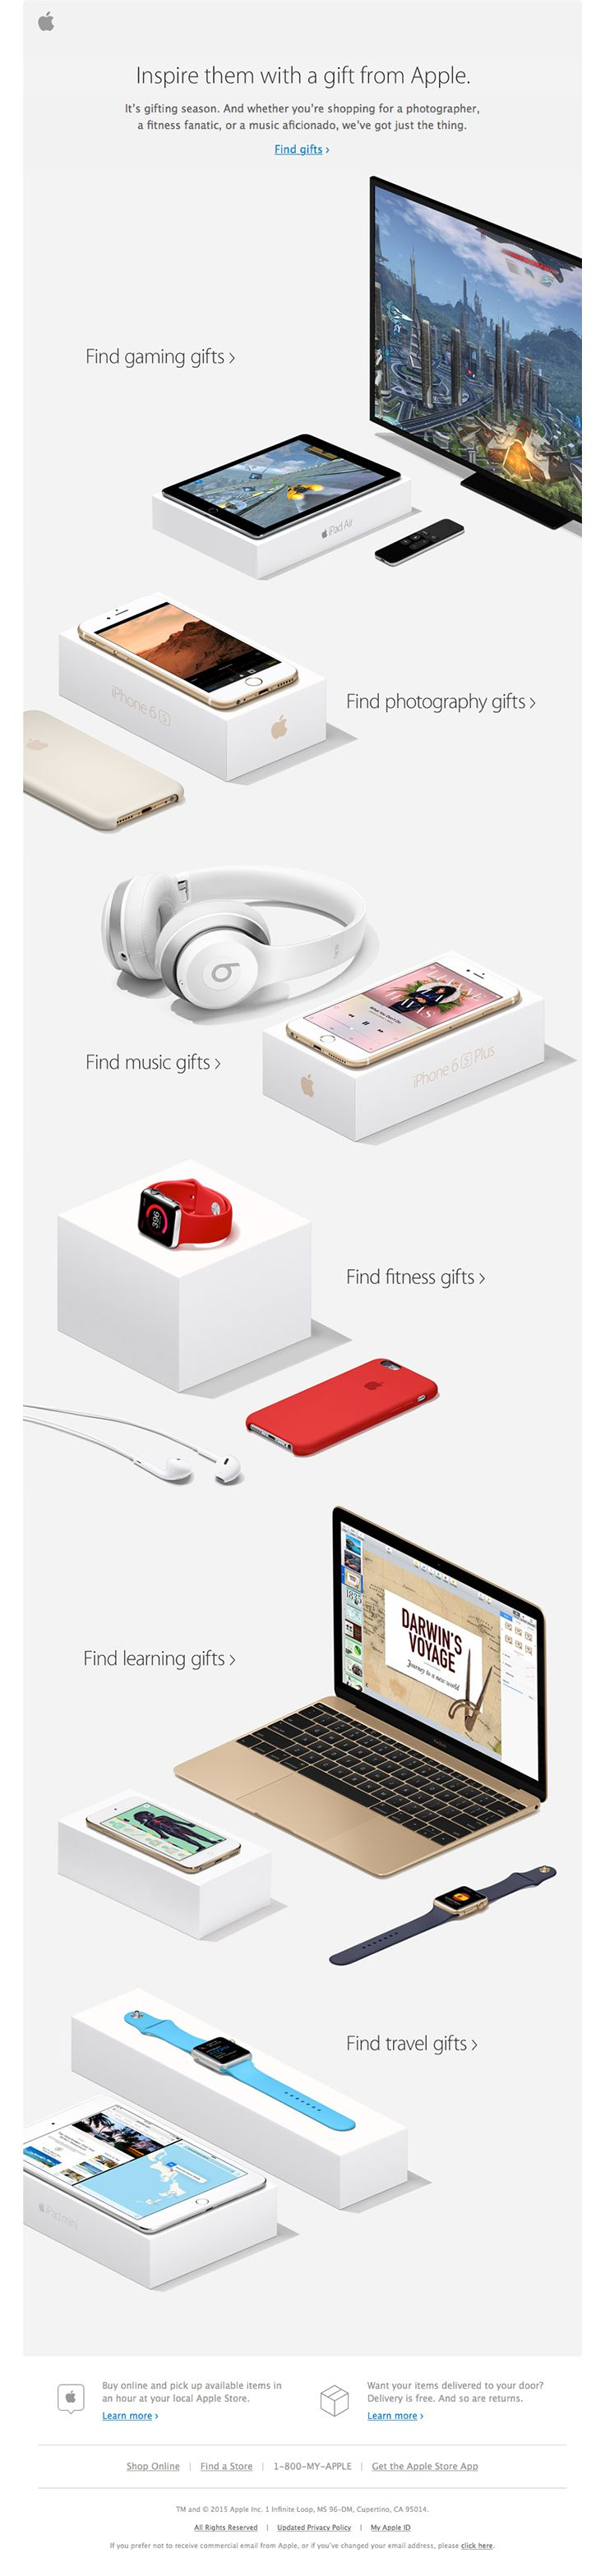 """Apple sent this email with the subject line: Great gifts for whatever they're into - You may think that this is a crazy-long email when you first look at it, but the spacing and """"white space"""" between products, along with how they are aligned, can teach you a lot. Each product is in its own slice, with a repeating Z pattern that leads your eye downward. Read about this email and find more promotion emails at ReallyGoodEmails.com #ecommerce #holiday #promotion"""